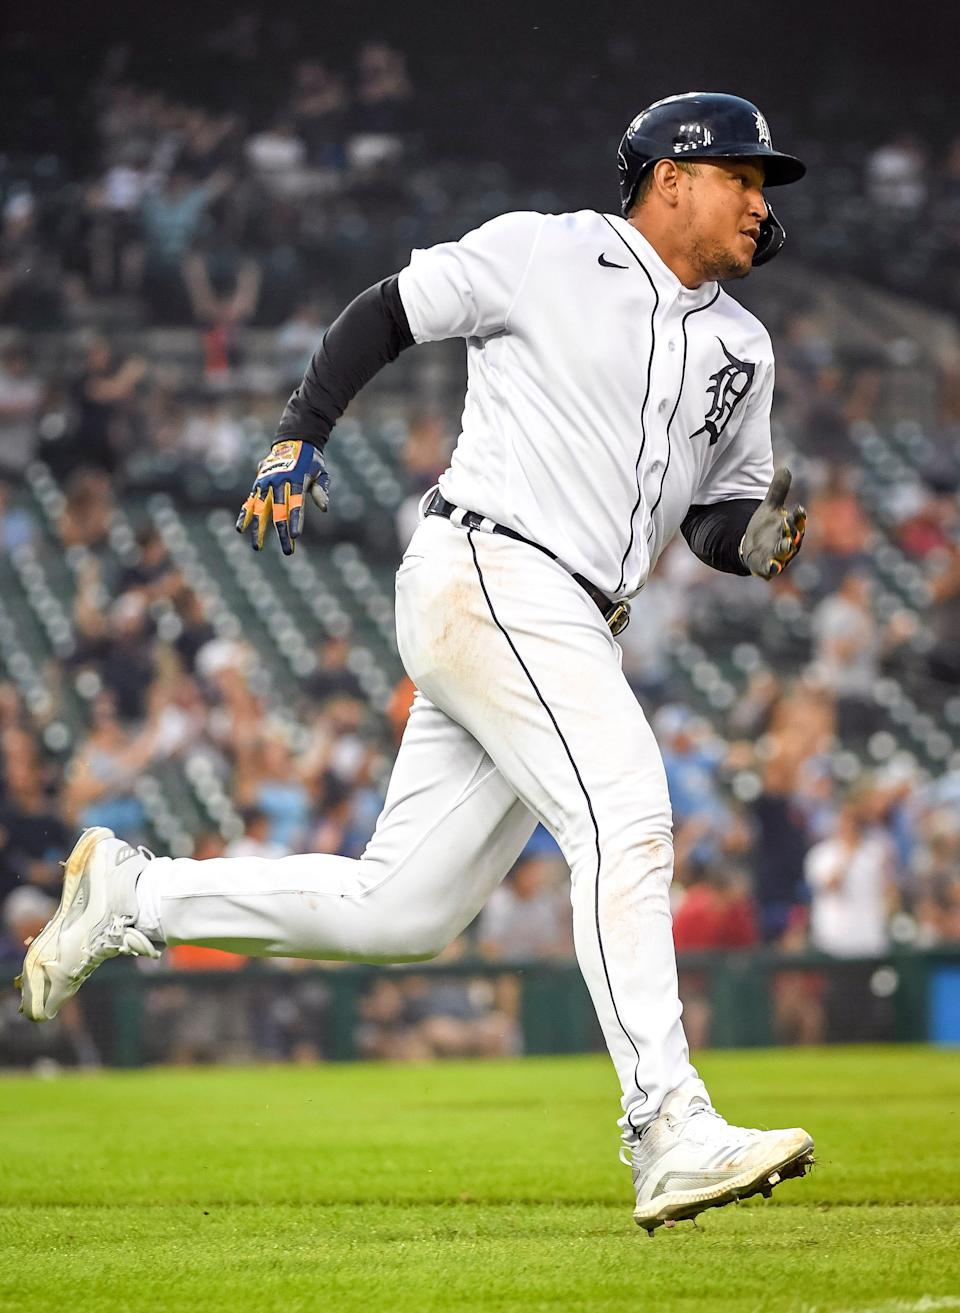 Tigers first baseman Miguel Cabrera runs during his double hit against the Texas Rangers during the bottom of the fifth inning at Comerica Park on Monday, July 19, 2021.